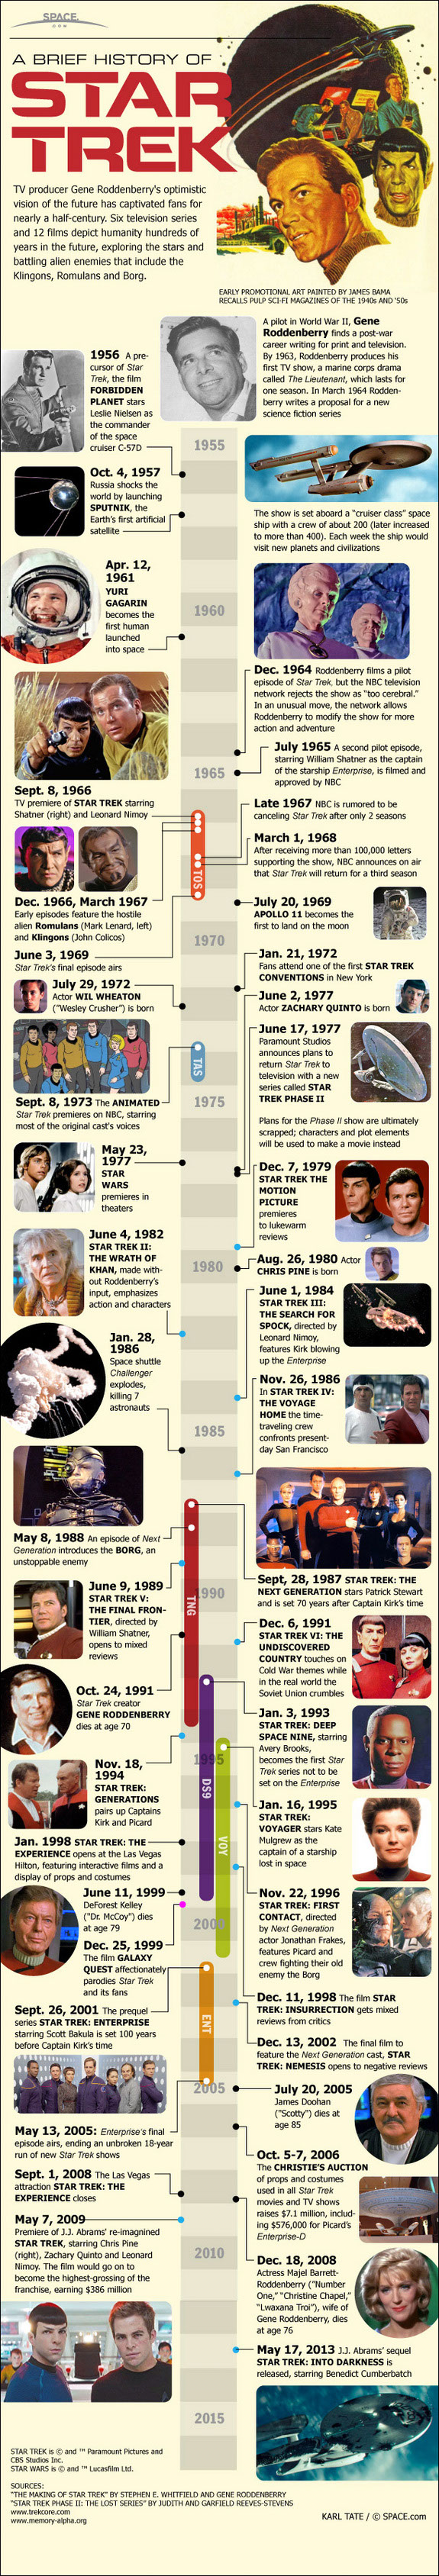 Star Trek Timeline-Infographic